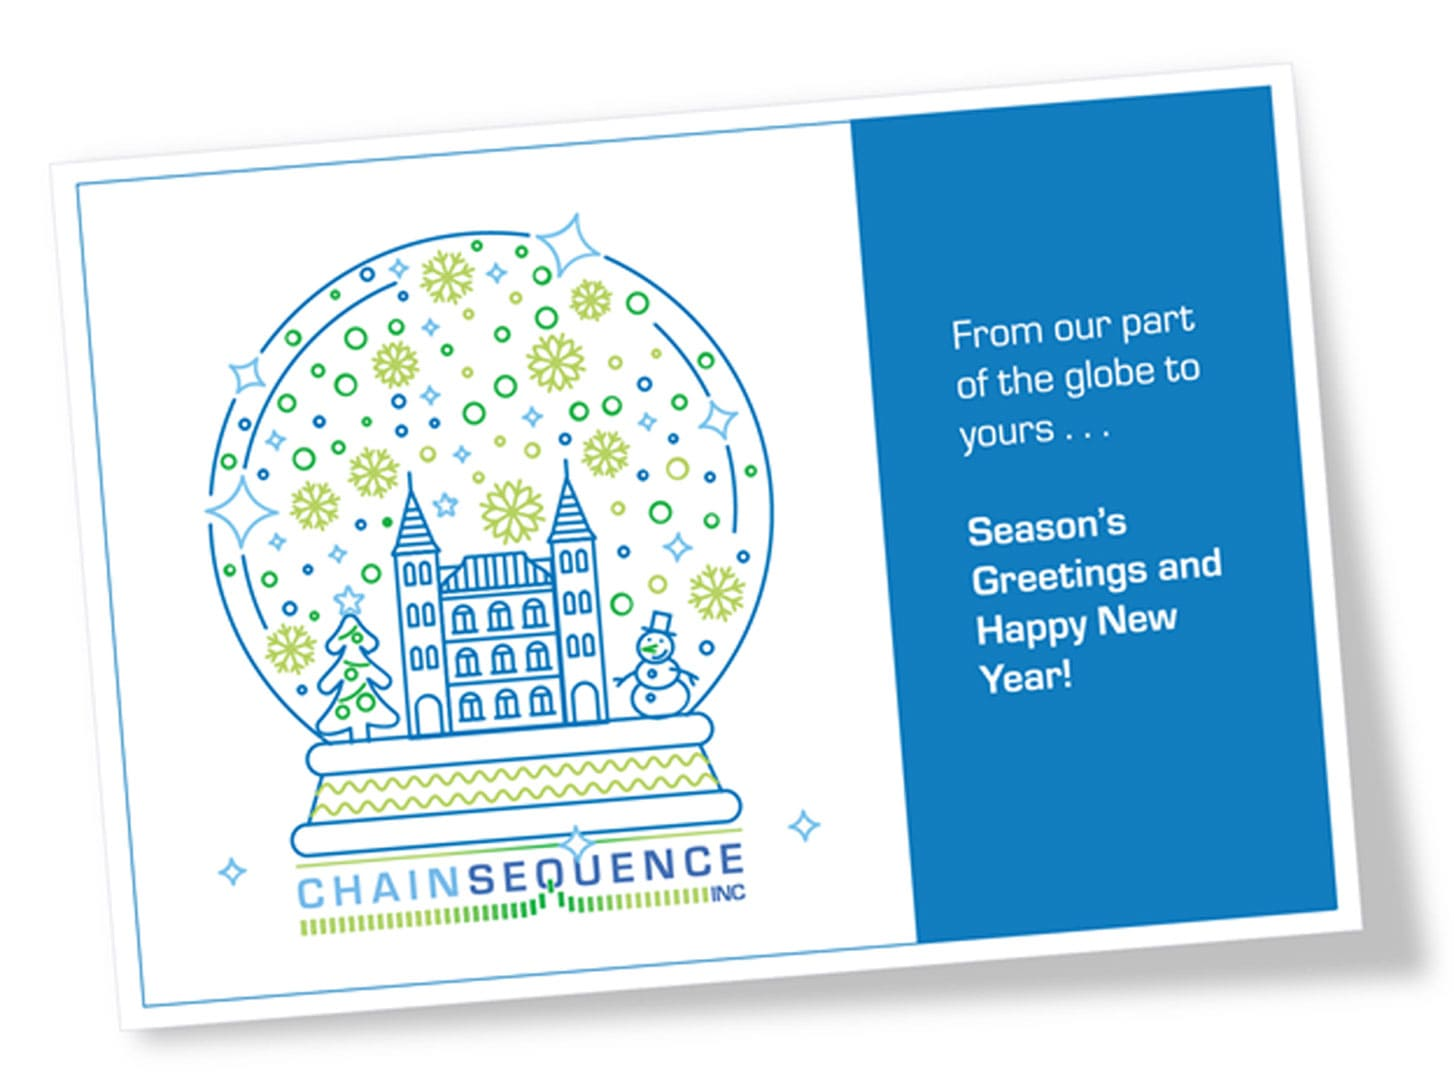 Greetings Of The Season From Chainsequence Chainsequence Inc